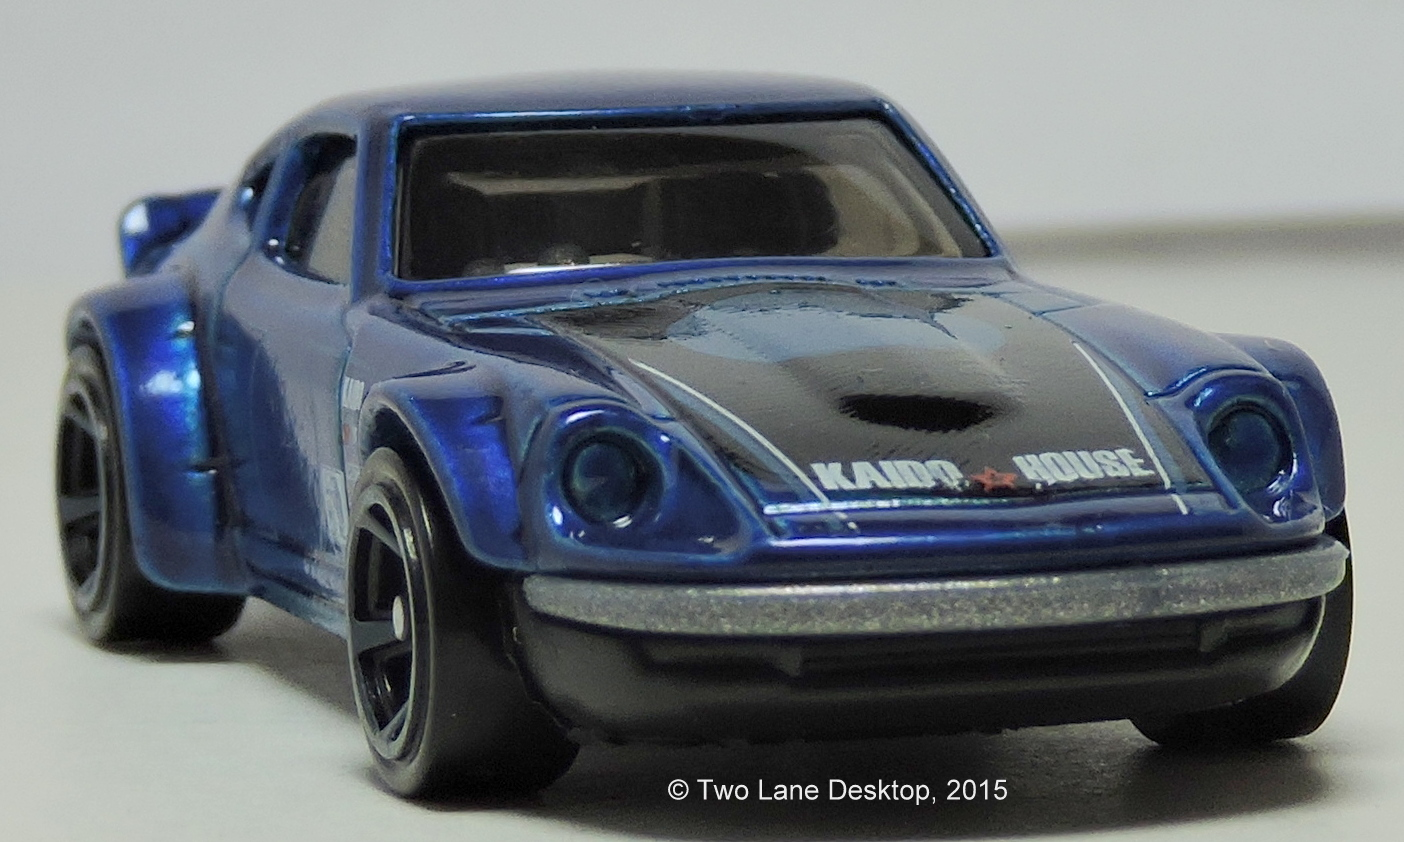 Two Lane Desktop: Hot Wheels Nissan Fairlady Z and Datsun 240Z